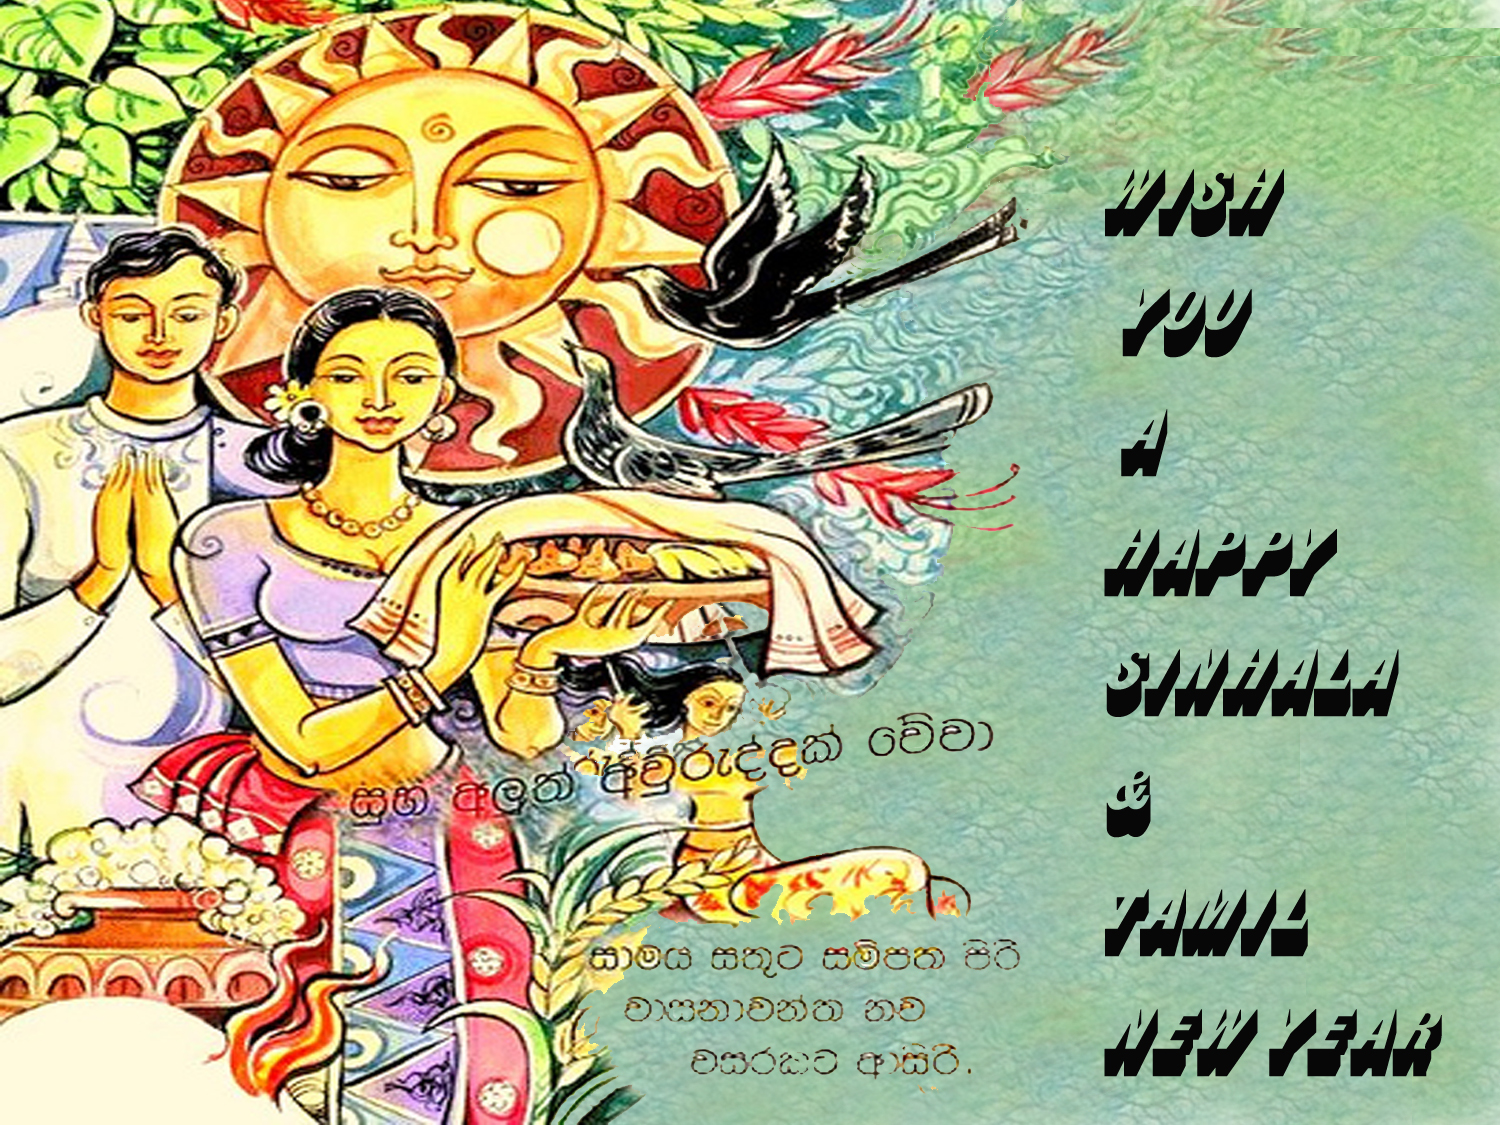 Sinhala AmpTamil New Year